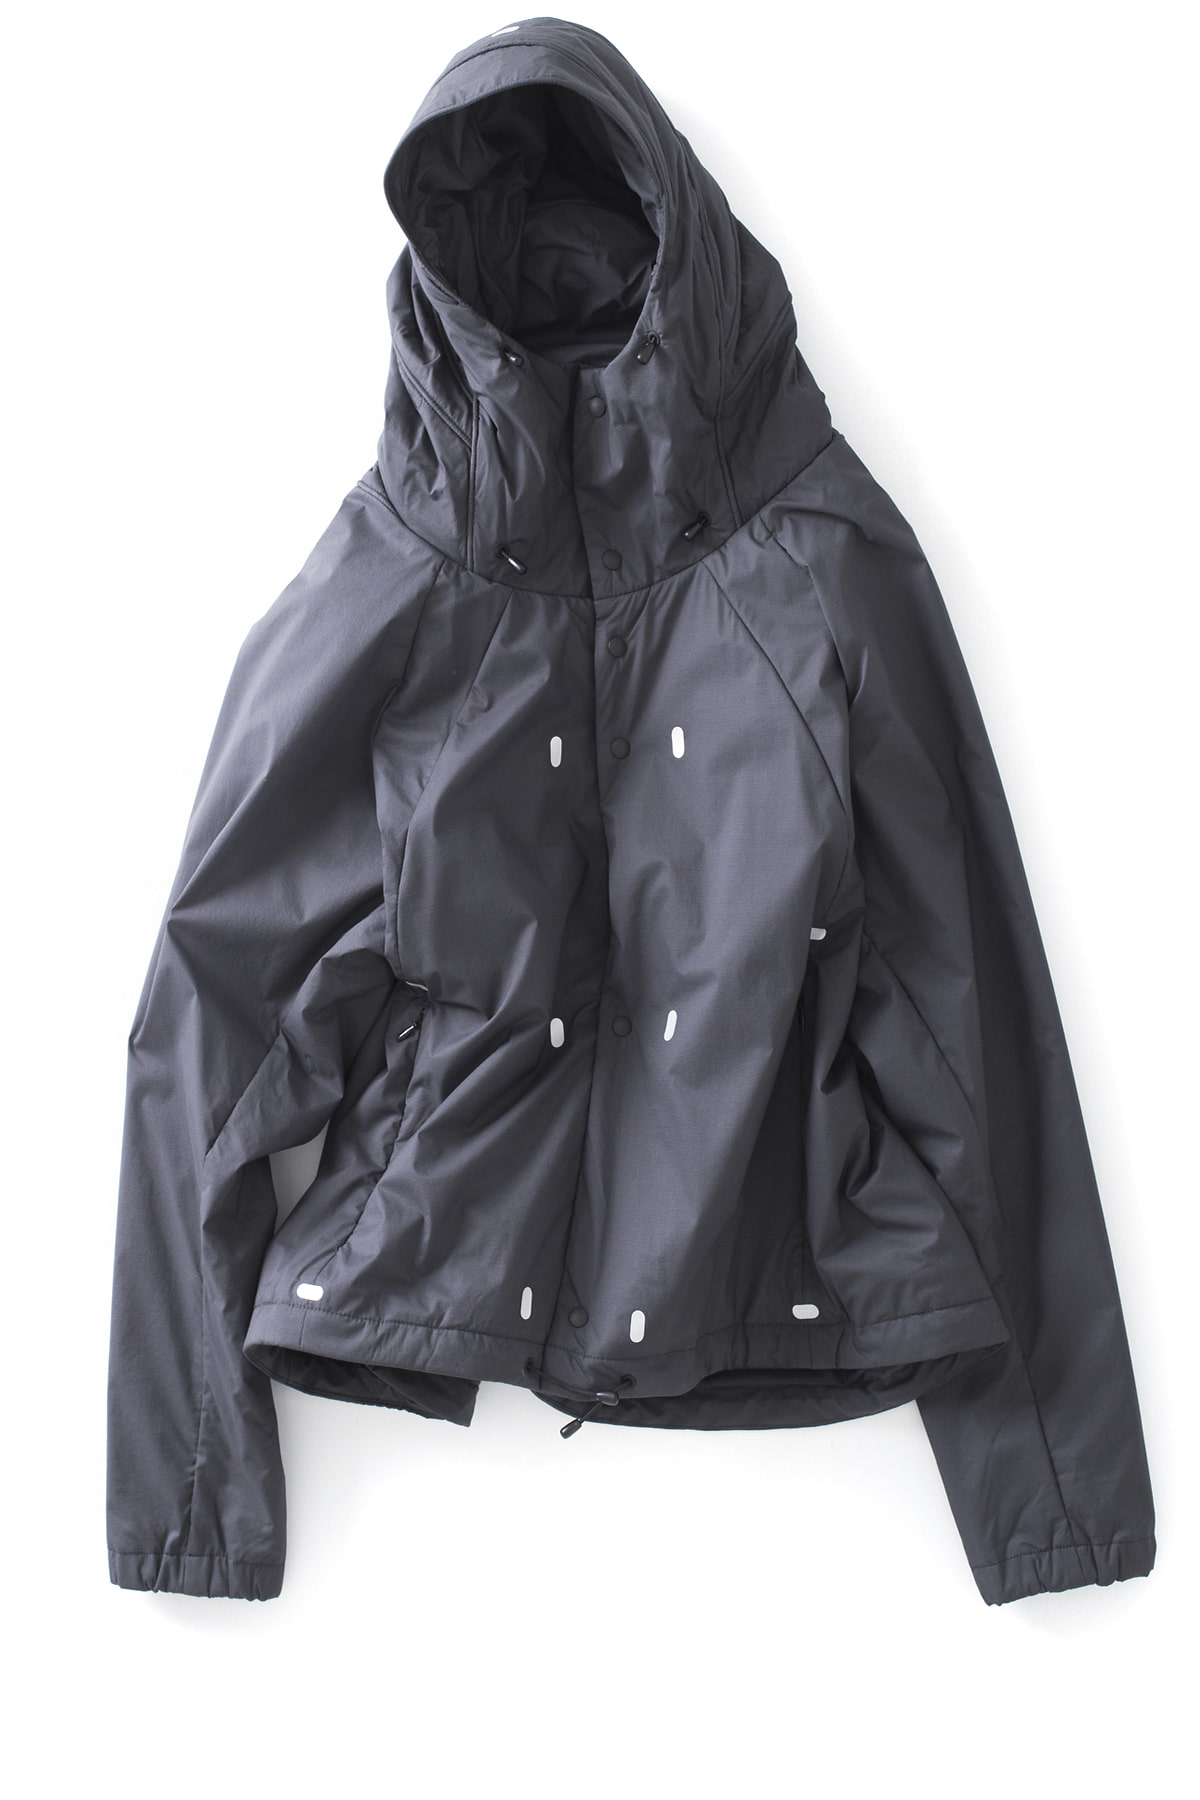 alk phenix : Dome Poncho / Hyper Stretch LT X α (Charcoal Grey)